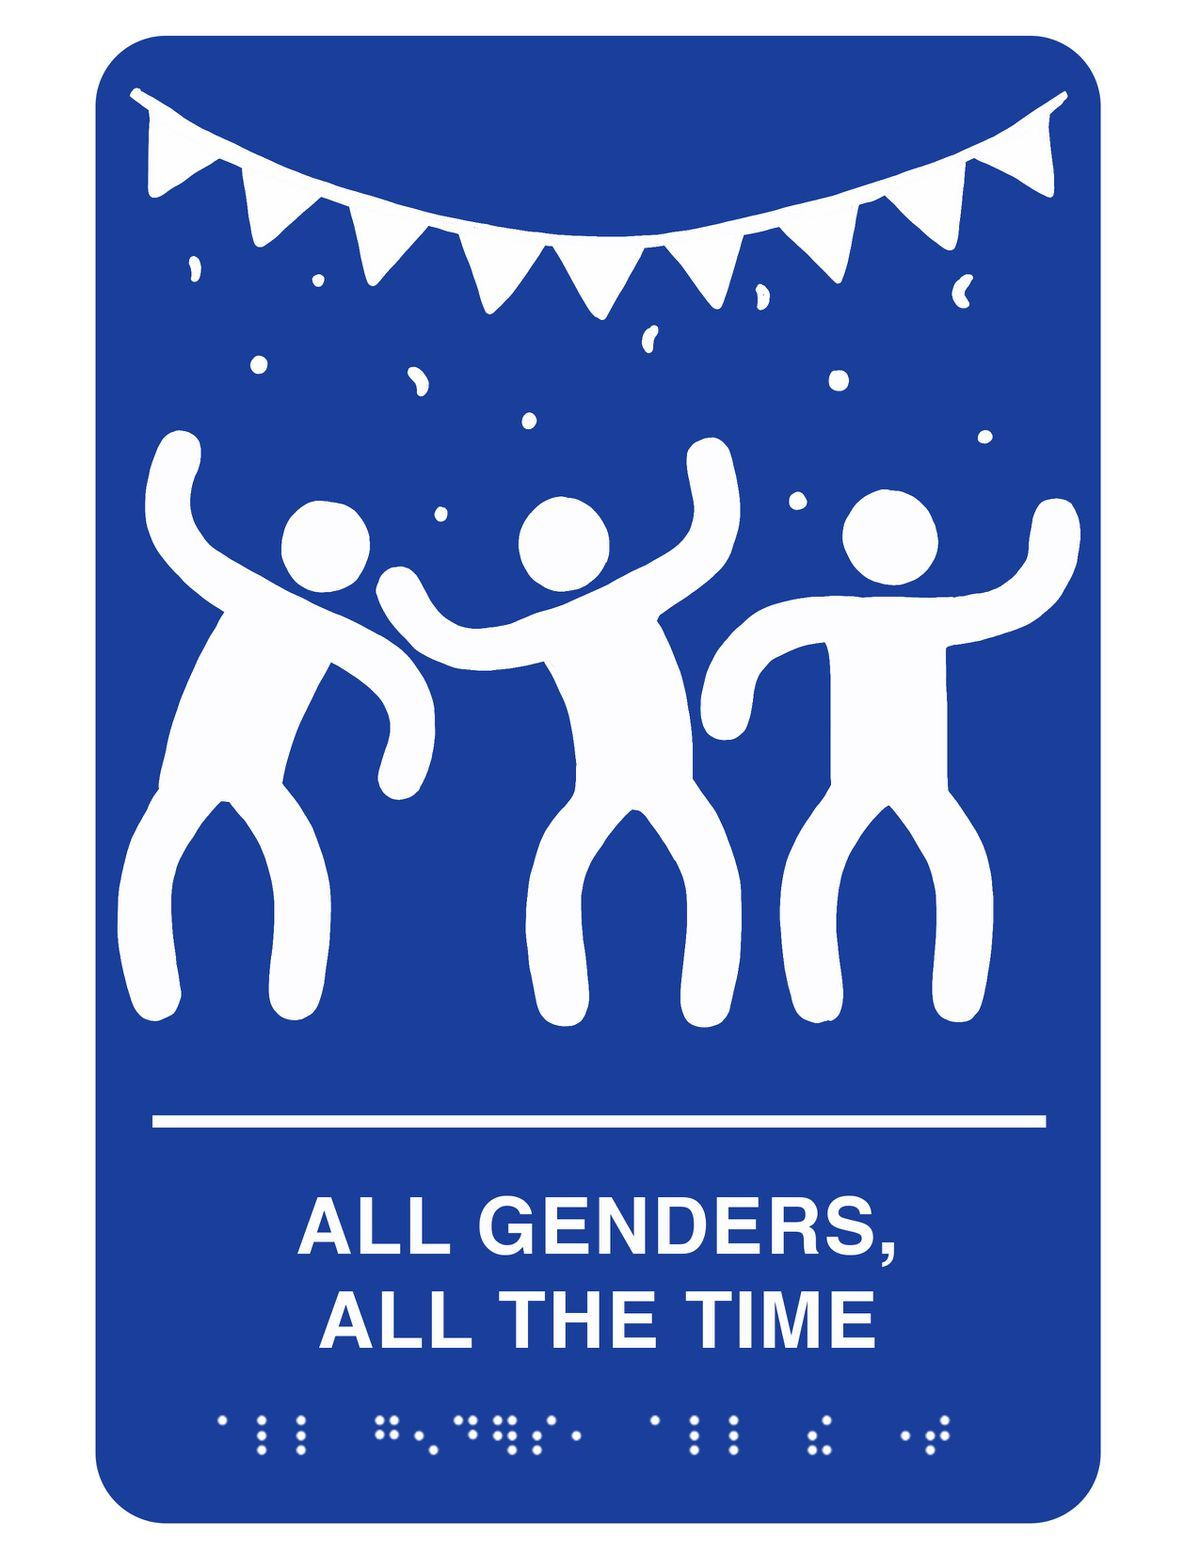 Printable Gender Inclusive Bathroom Signs You Can Put Up Anywhere That Needs It Mashable Gender Neutral Bathroom Signs Neutral Bathroom Unisex Bathroom Sign